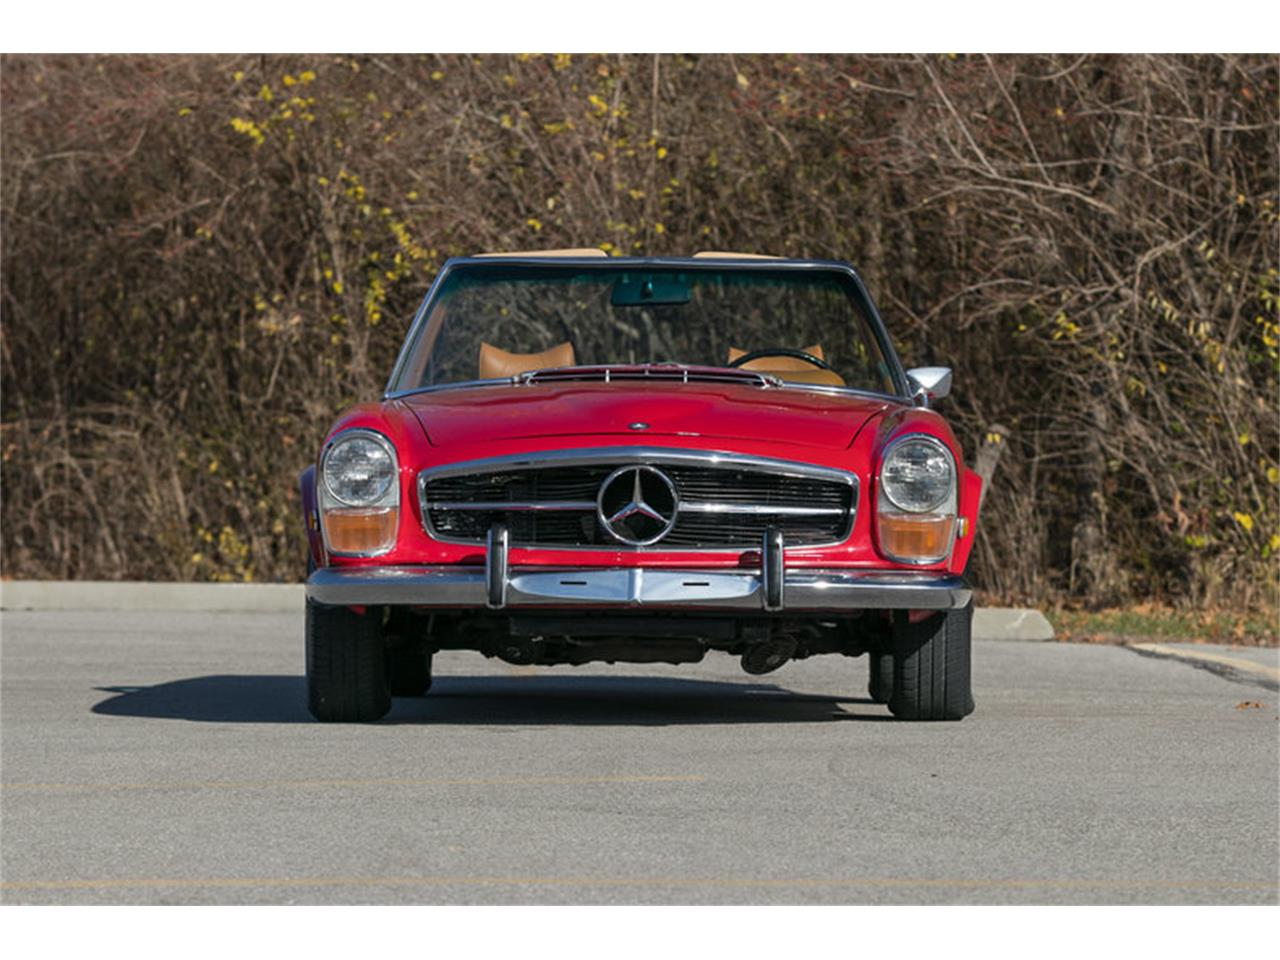 Large Picture of '71 Mercedes-Benz 280SL - $69,995.00 - MFTR